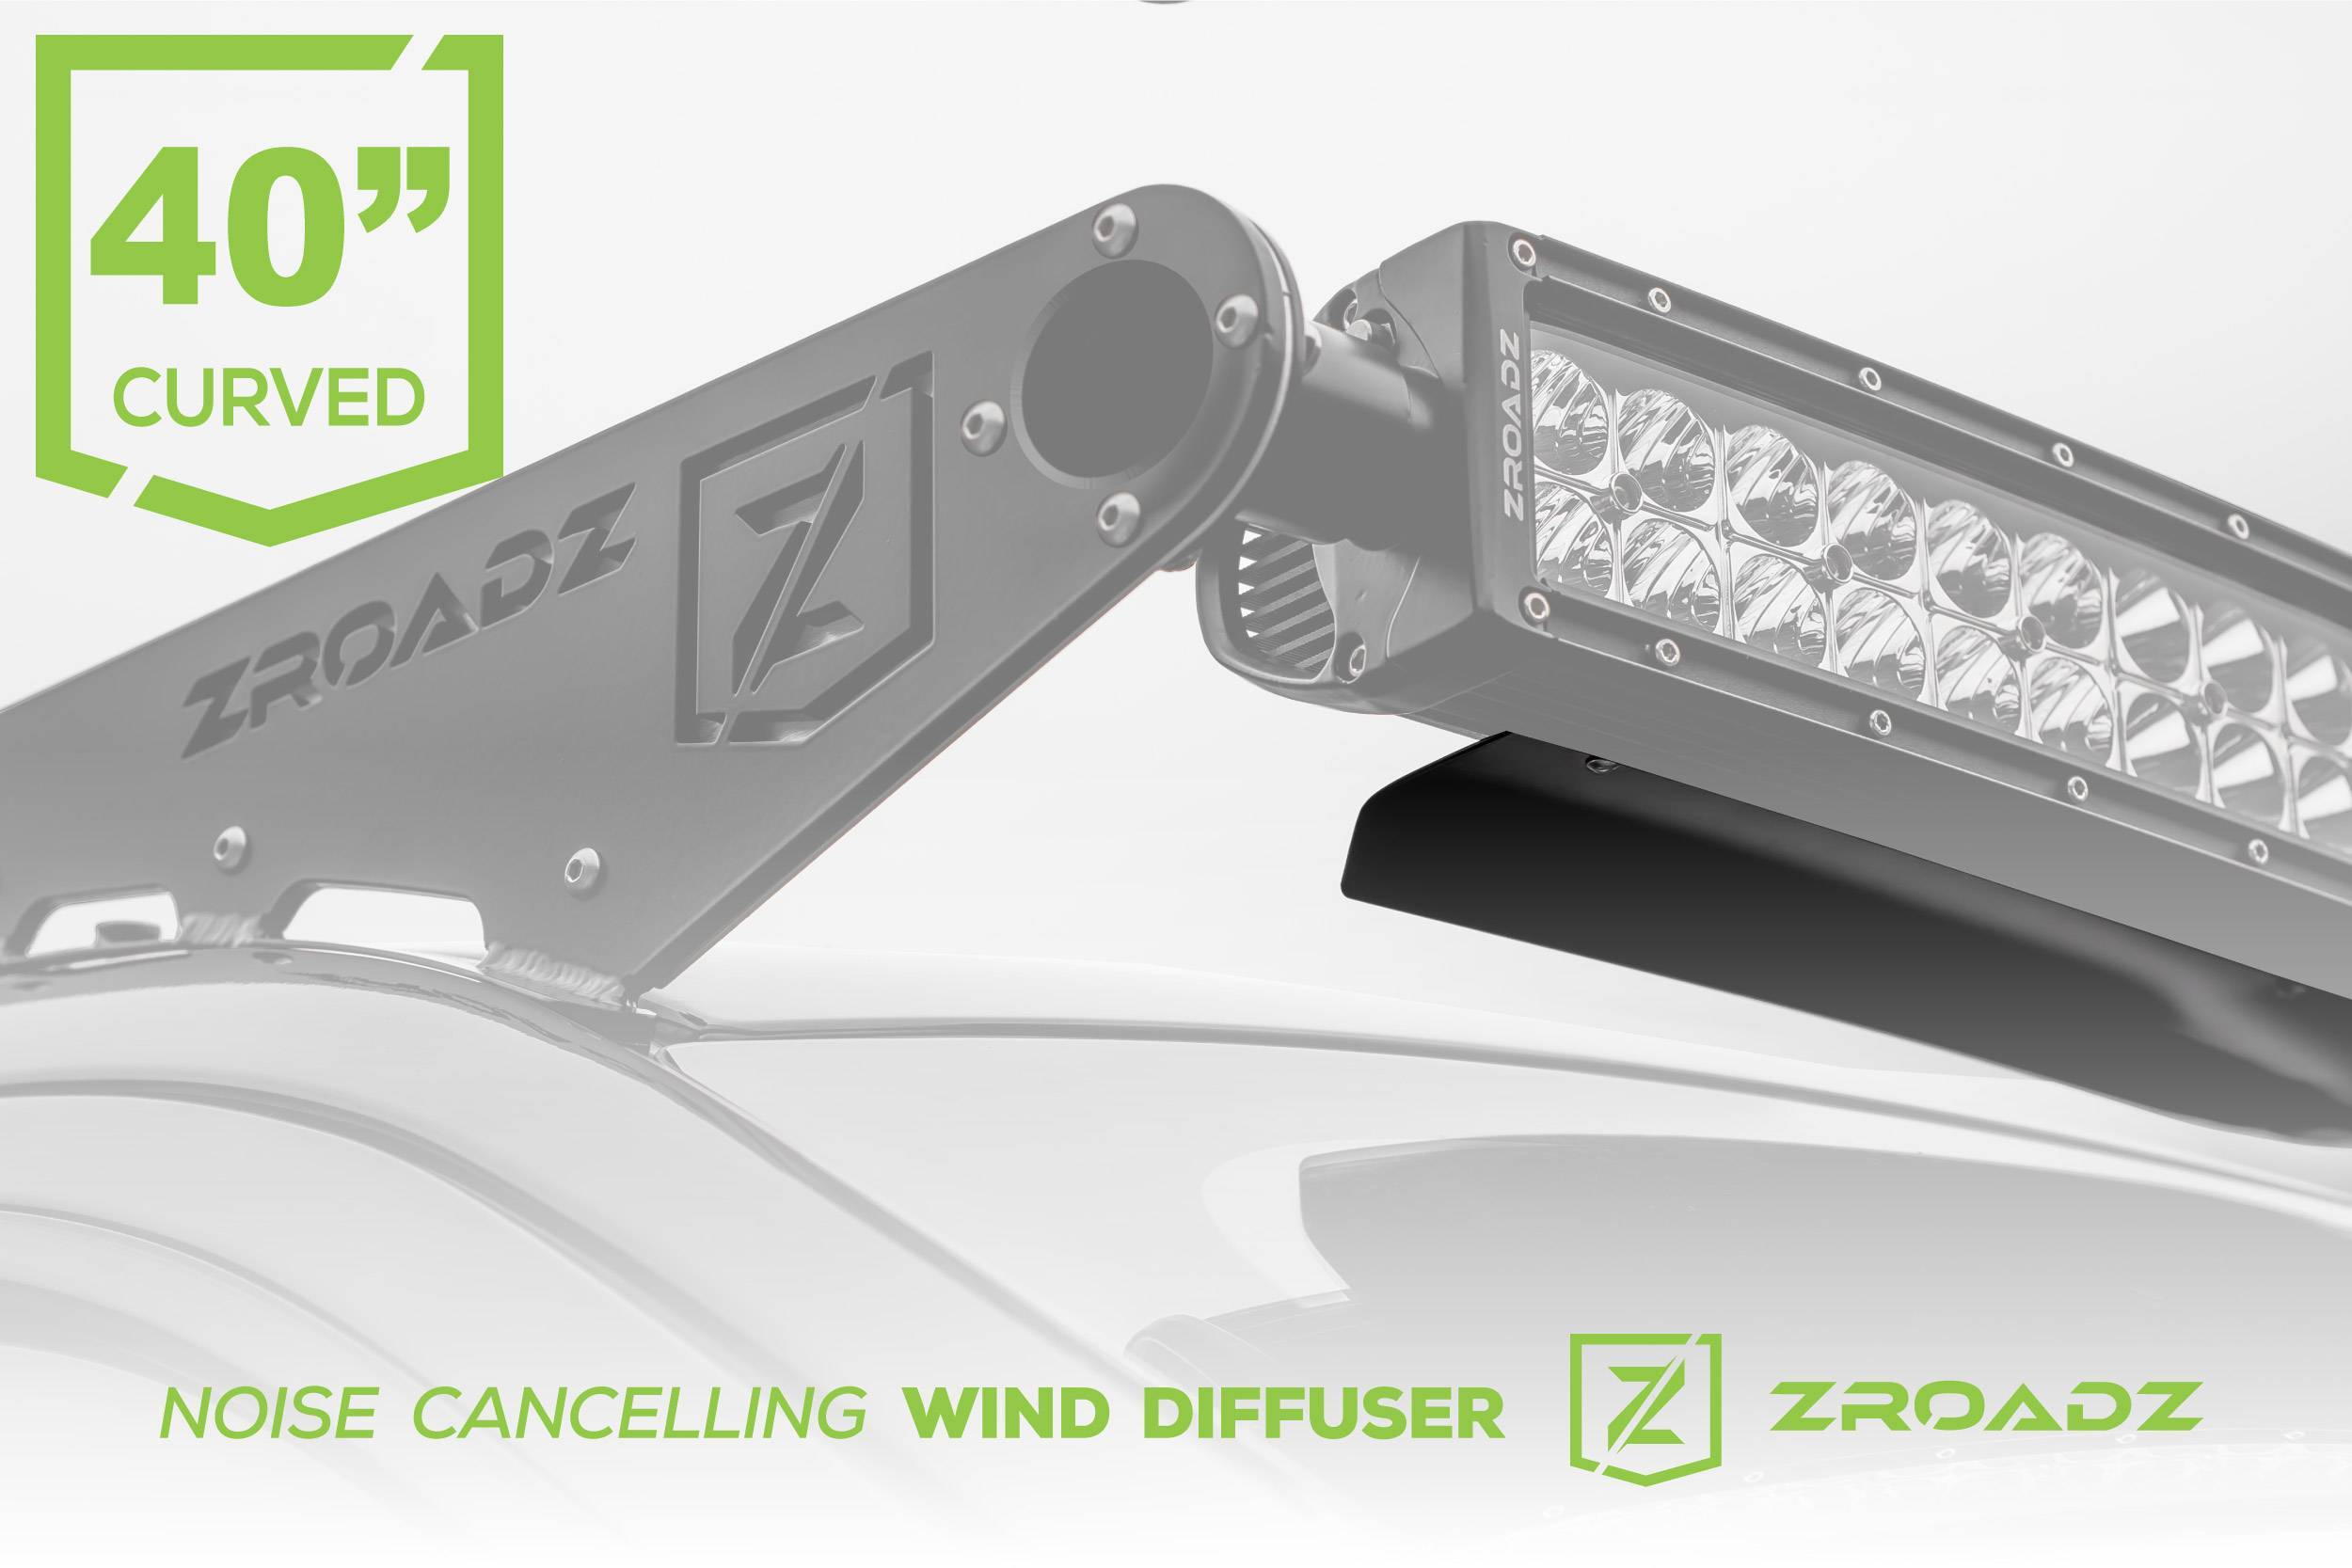 ZROADZ - Noise Cancelling Wind Diffuser for (1) 40 Inch Curved LED Light Bar - PN #Z330040C